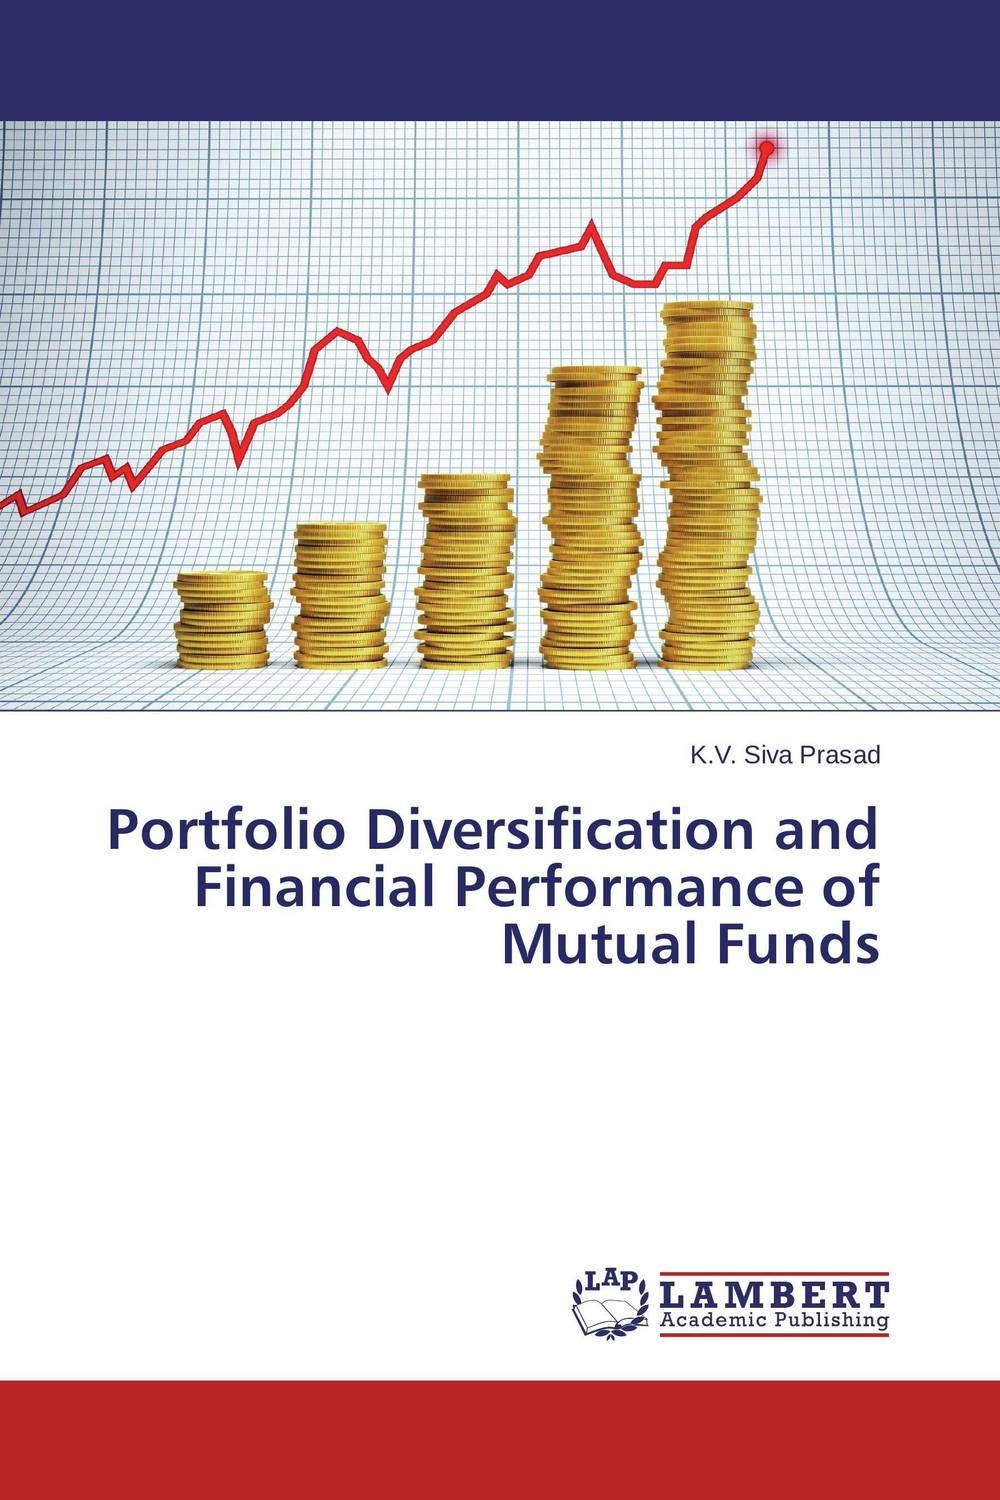 Portfolio Diversification and Financial Performance of Mutual Funds john haslem a mutual funds portfolio structures analysis management and stewardship